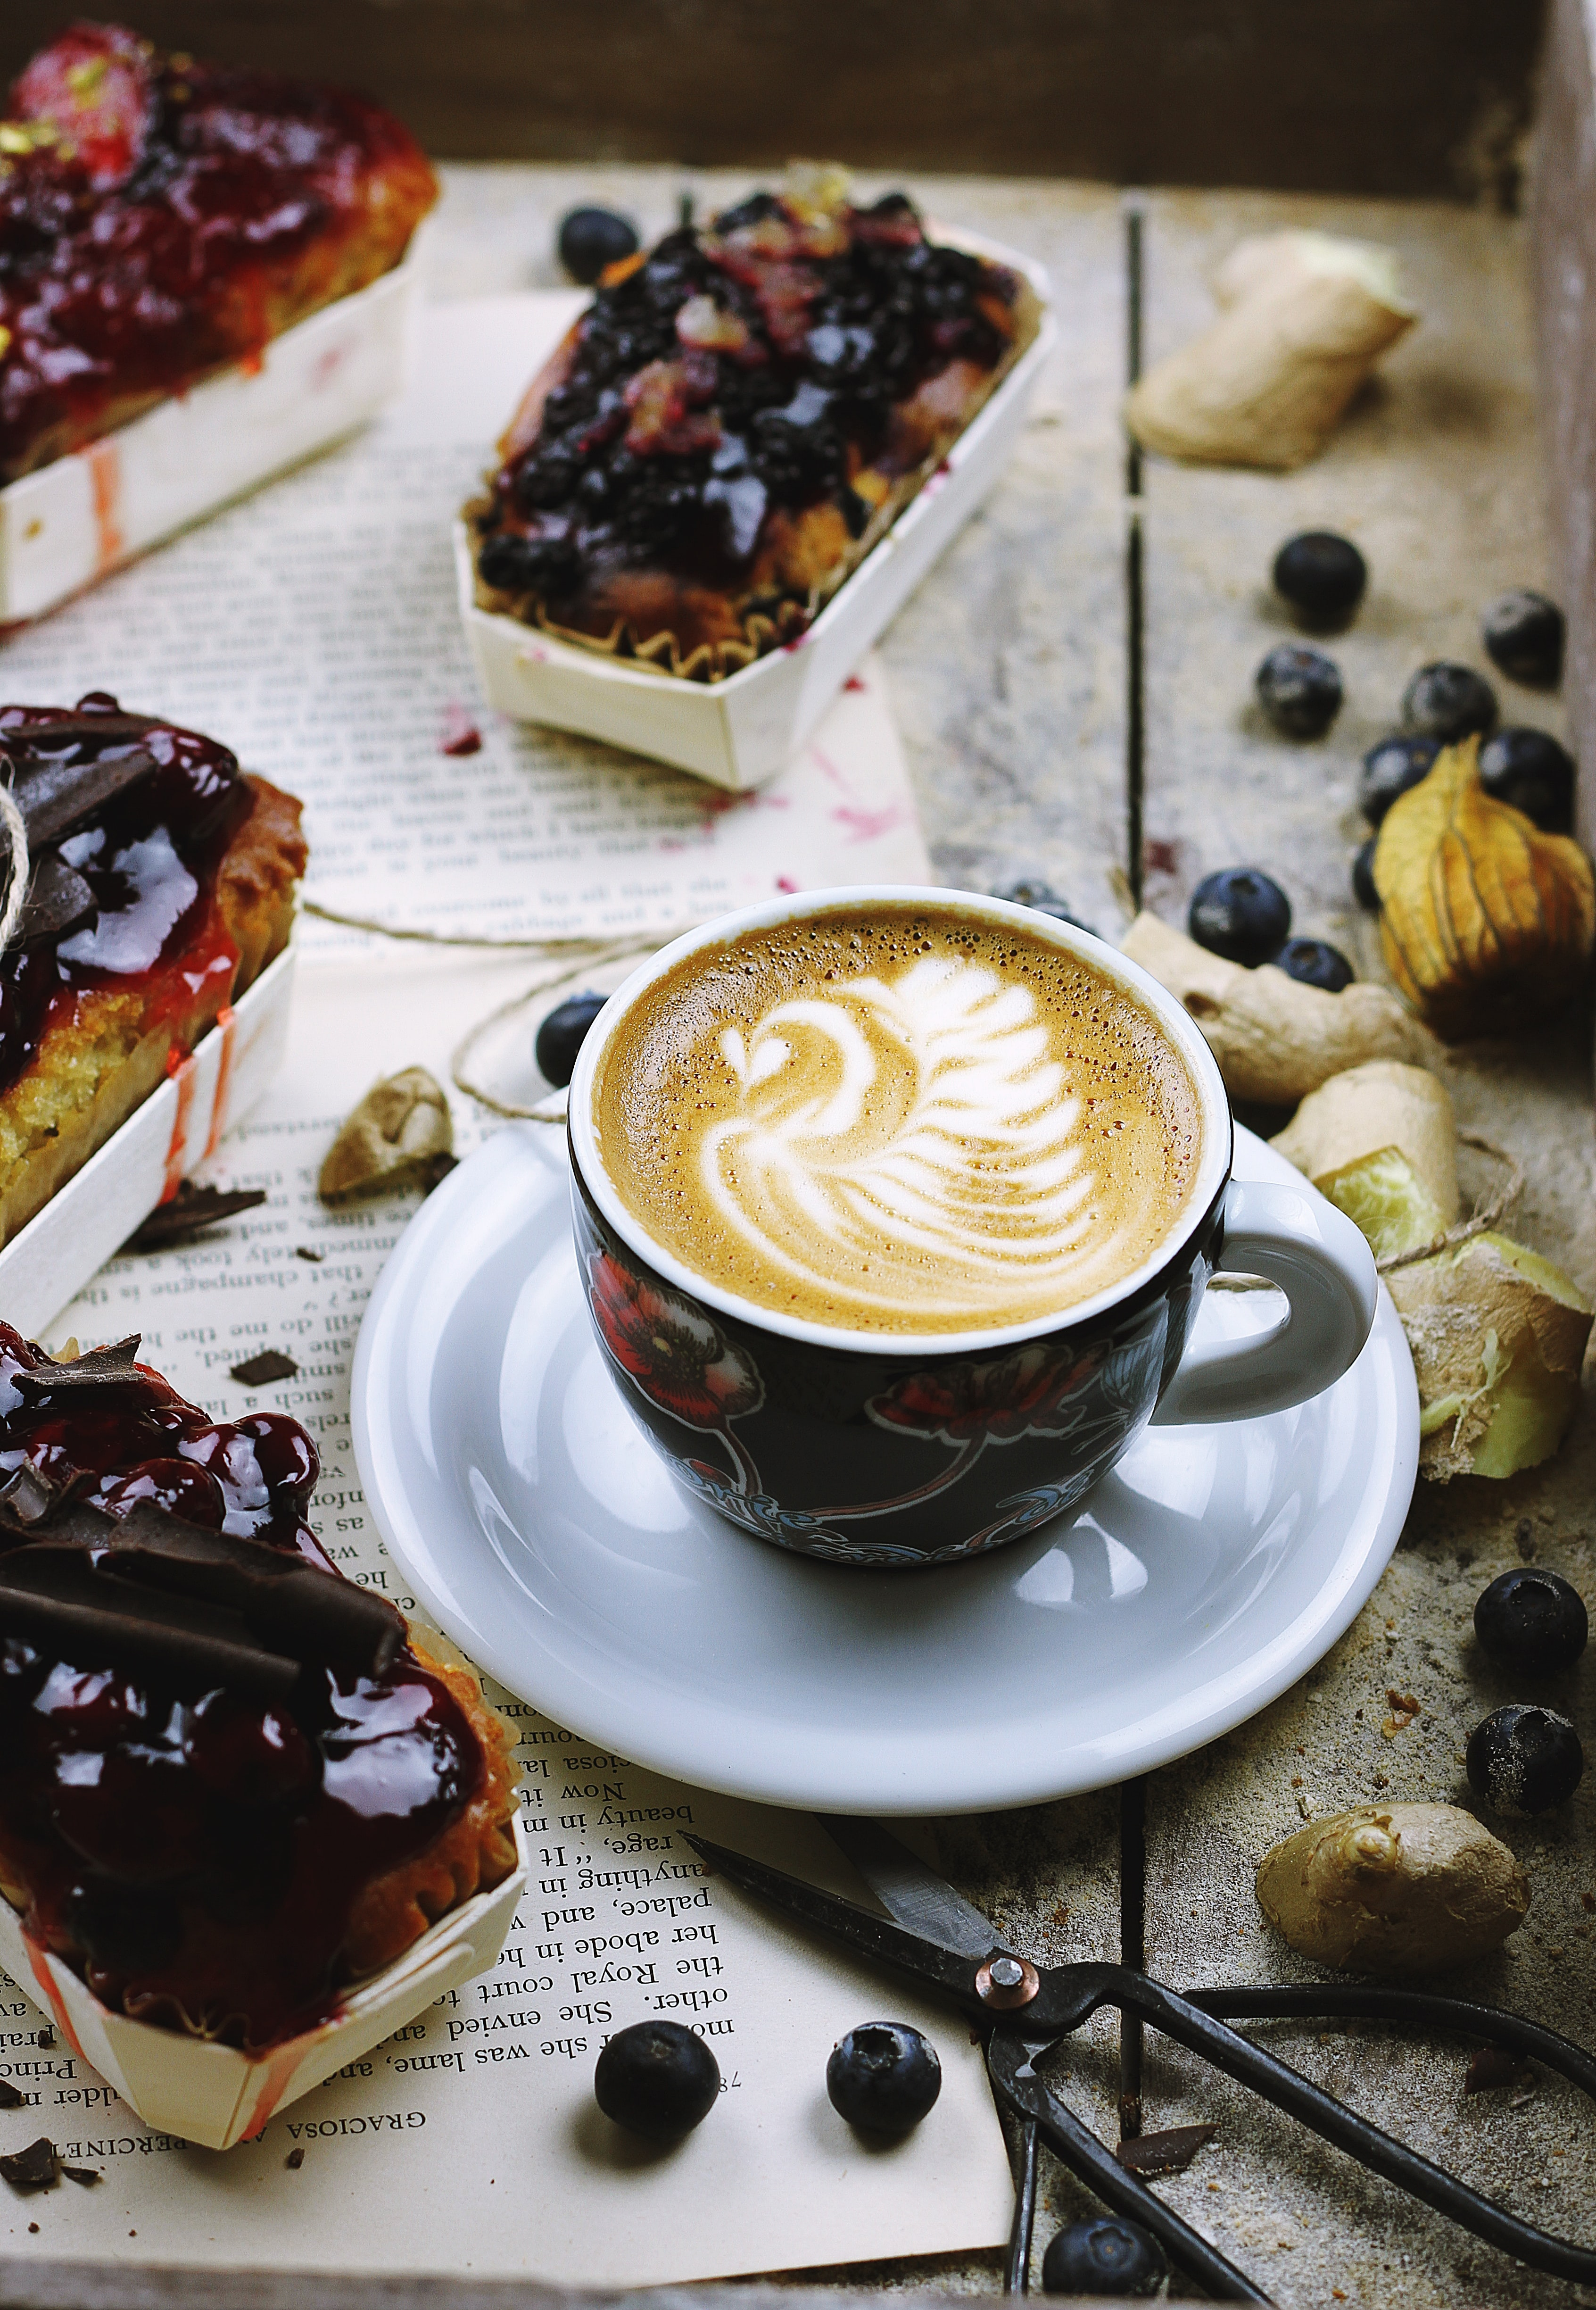 Latte artwork on white marble table with baked cake bar, fruit, scissors and grinder